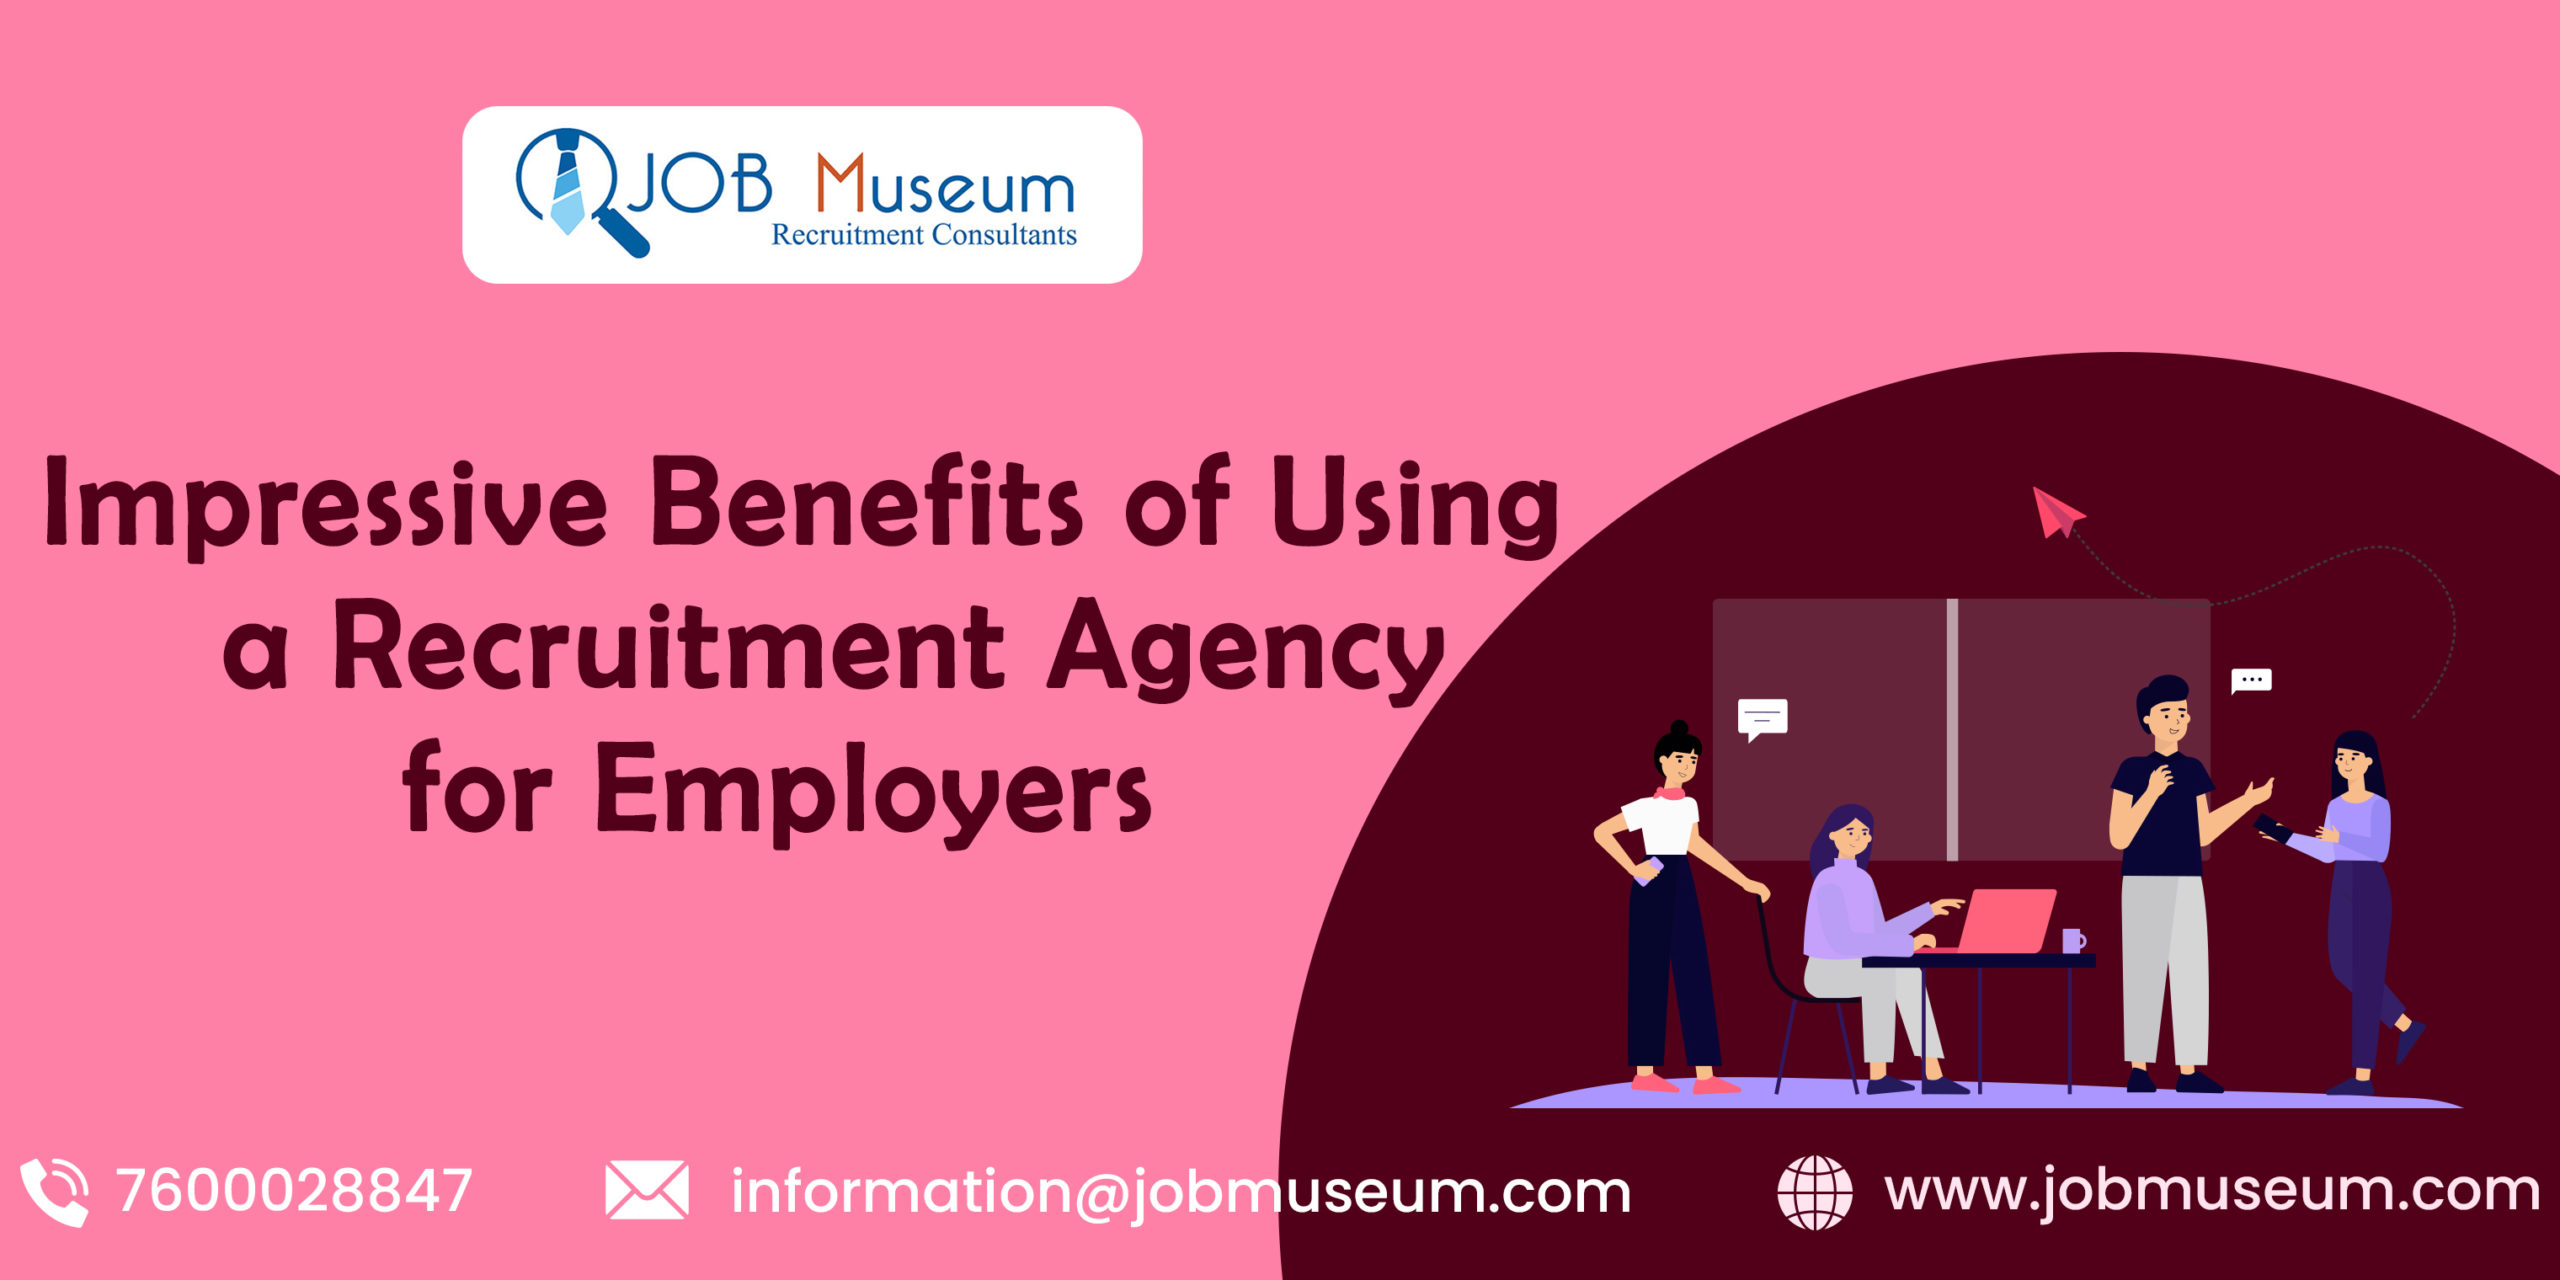 Impressive Benefits of Using a Recruitment Agency for Employers